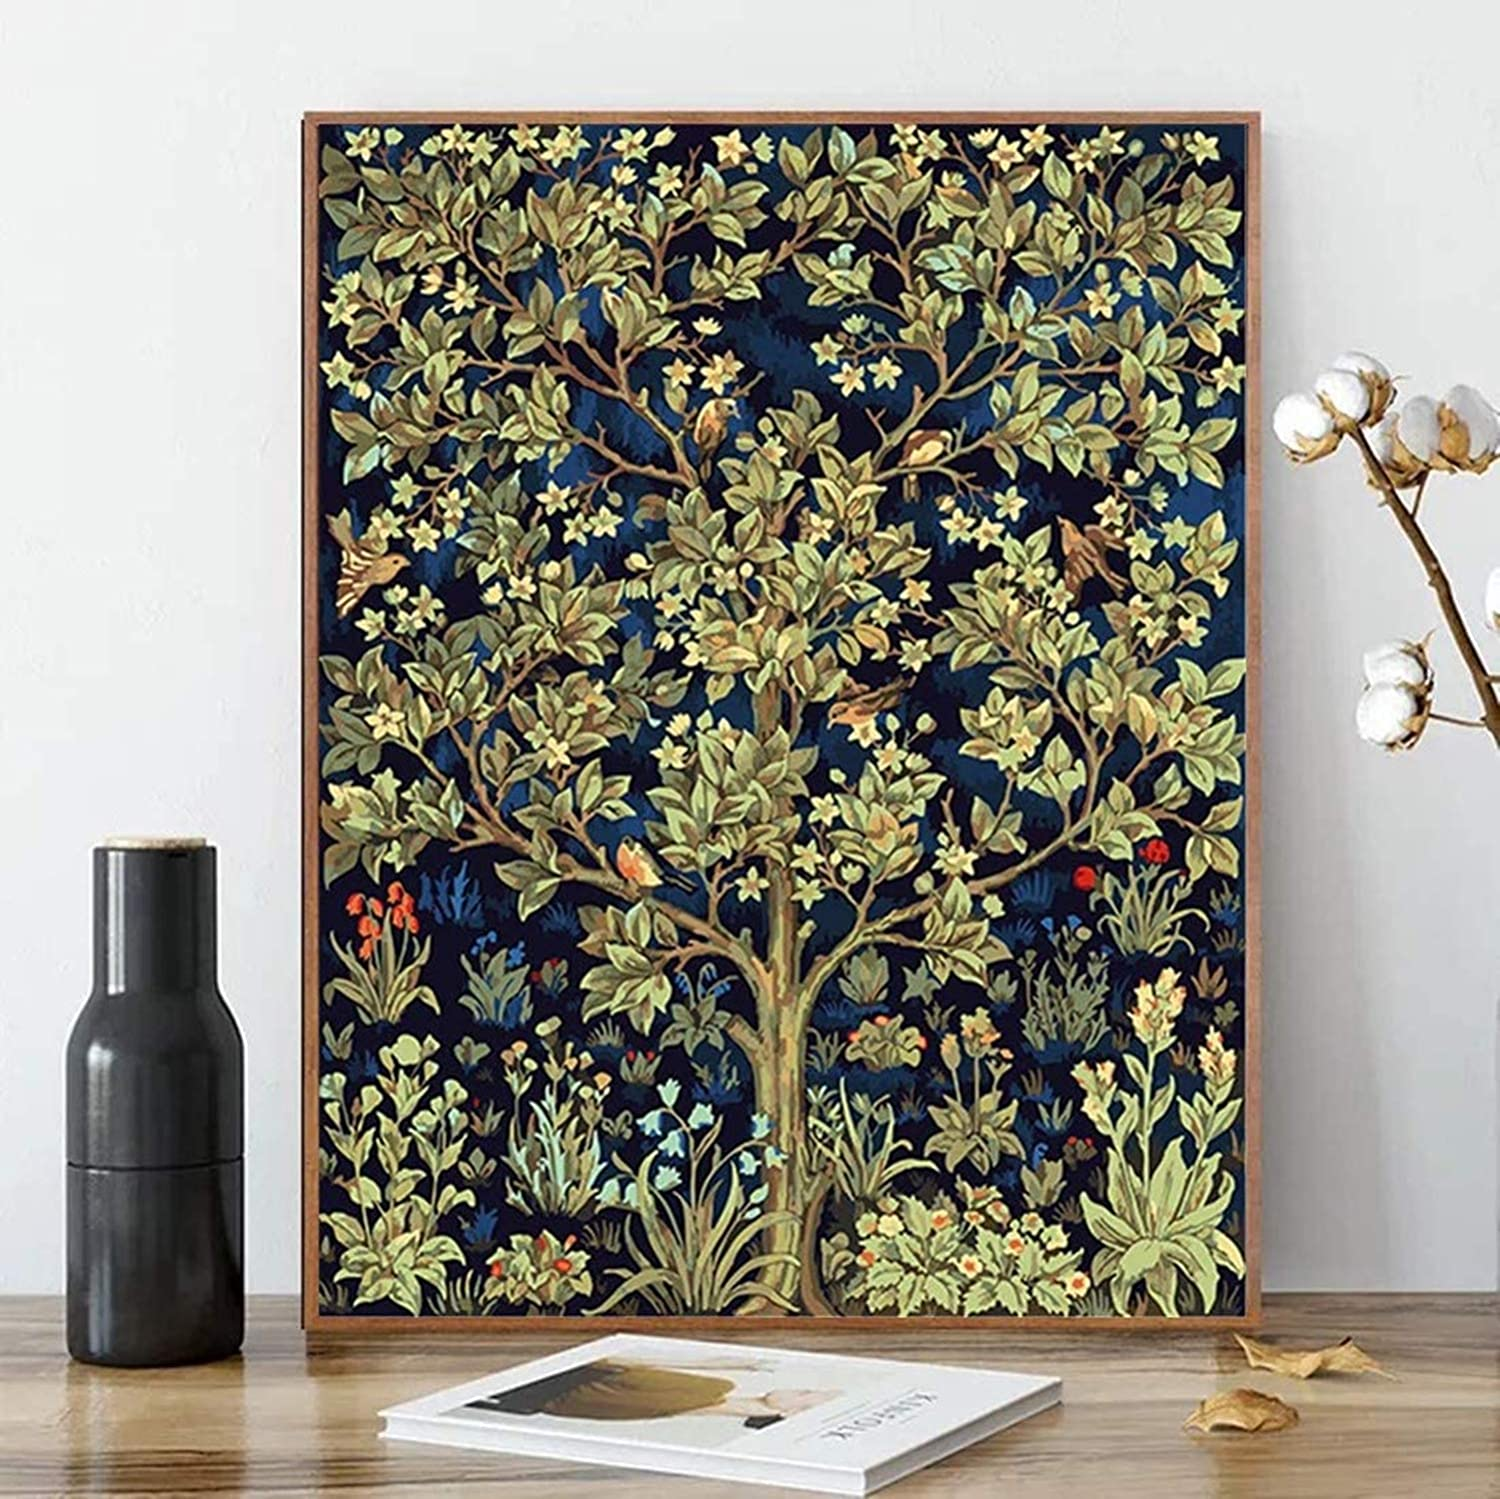 Drawing Paintwork with Paintbrushes Acrylic Pigment-Tree of Life Paint by Numbers 16 x 20 Canvas Interesting DIY Oil Painting Kit for Kids /& Adults